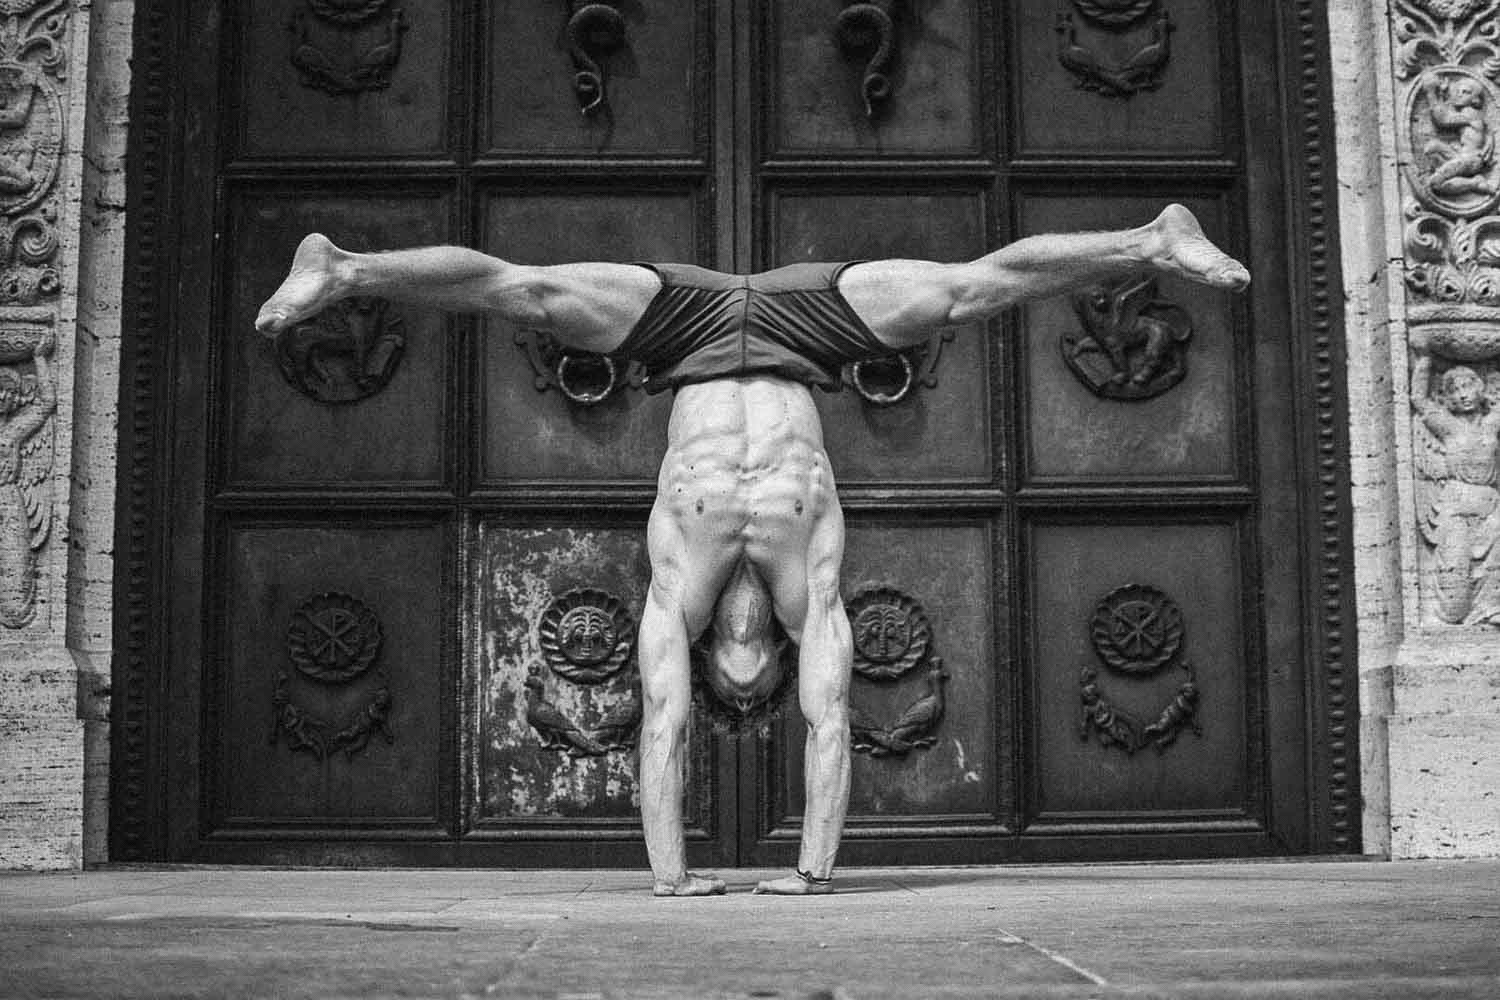 Theo doing a straddle handstand to show overhead mobility wearing So We Flow...